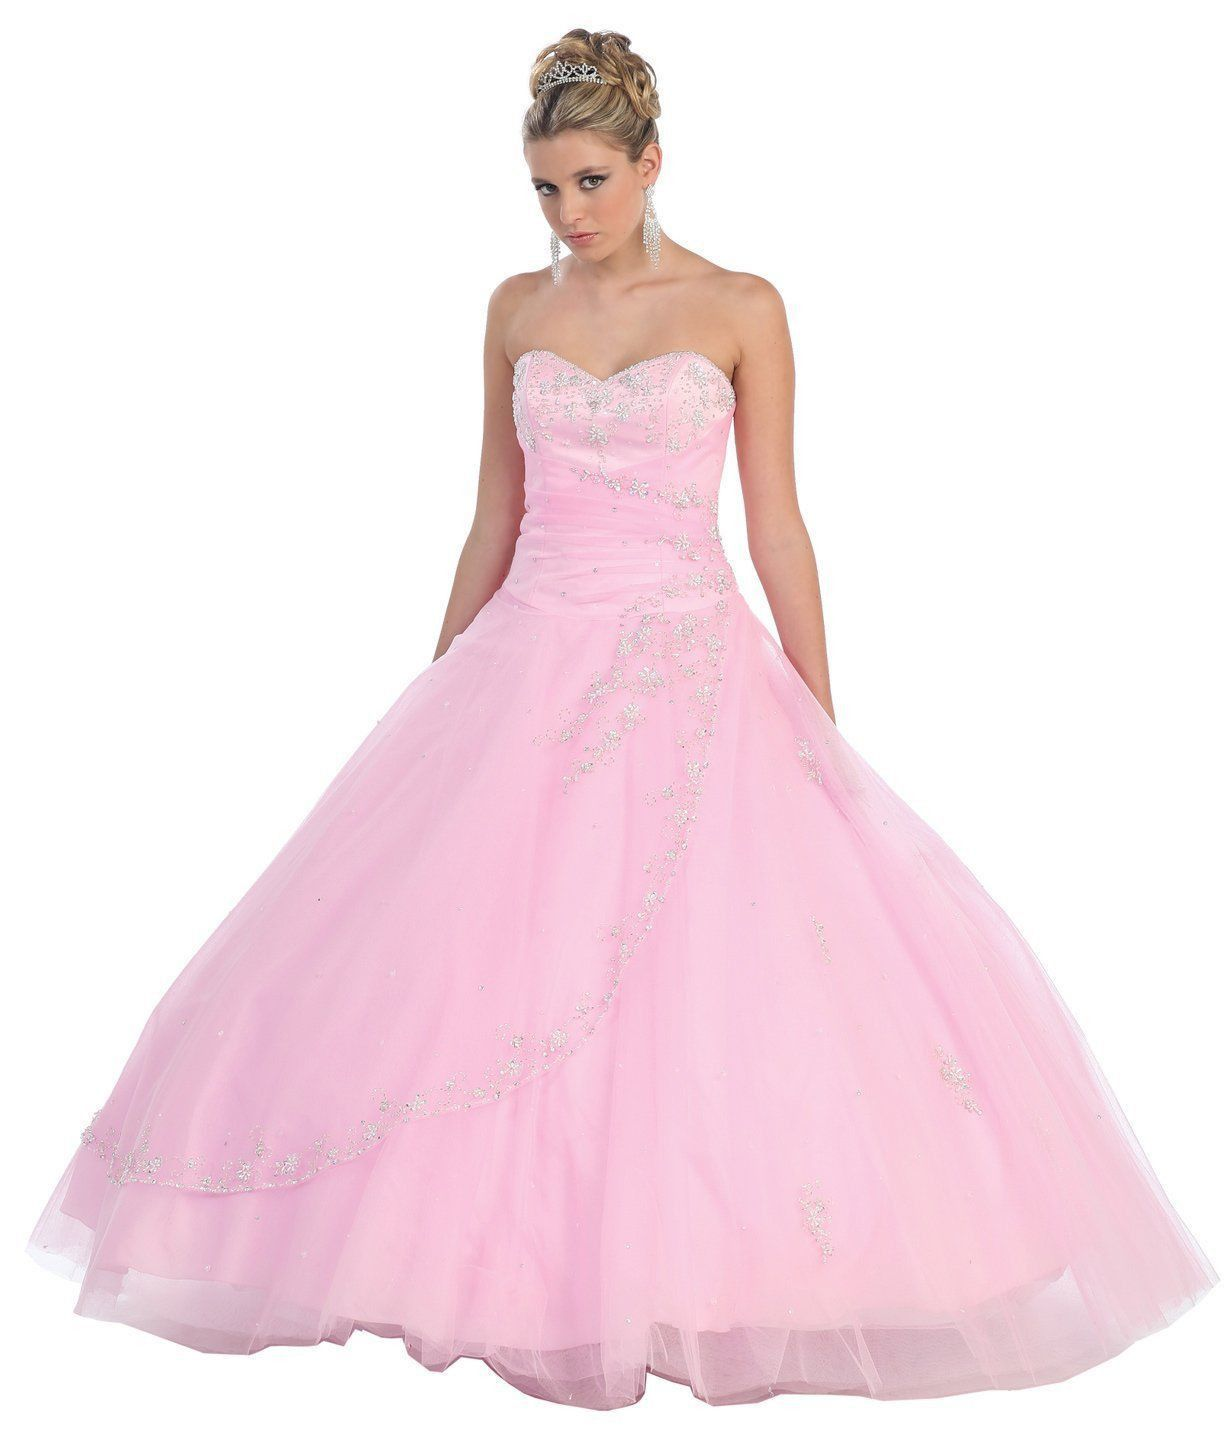 Quinceanera Long Ball Gown Sweet 16 Dress 2018 | Terry o'quinn ...